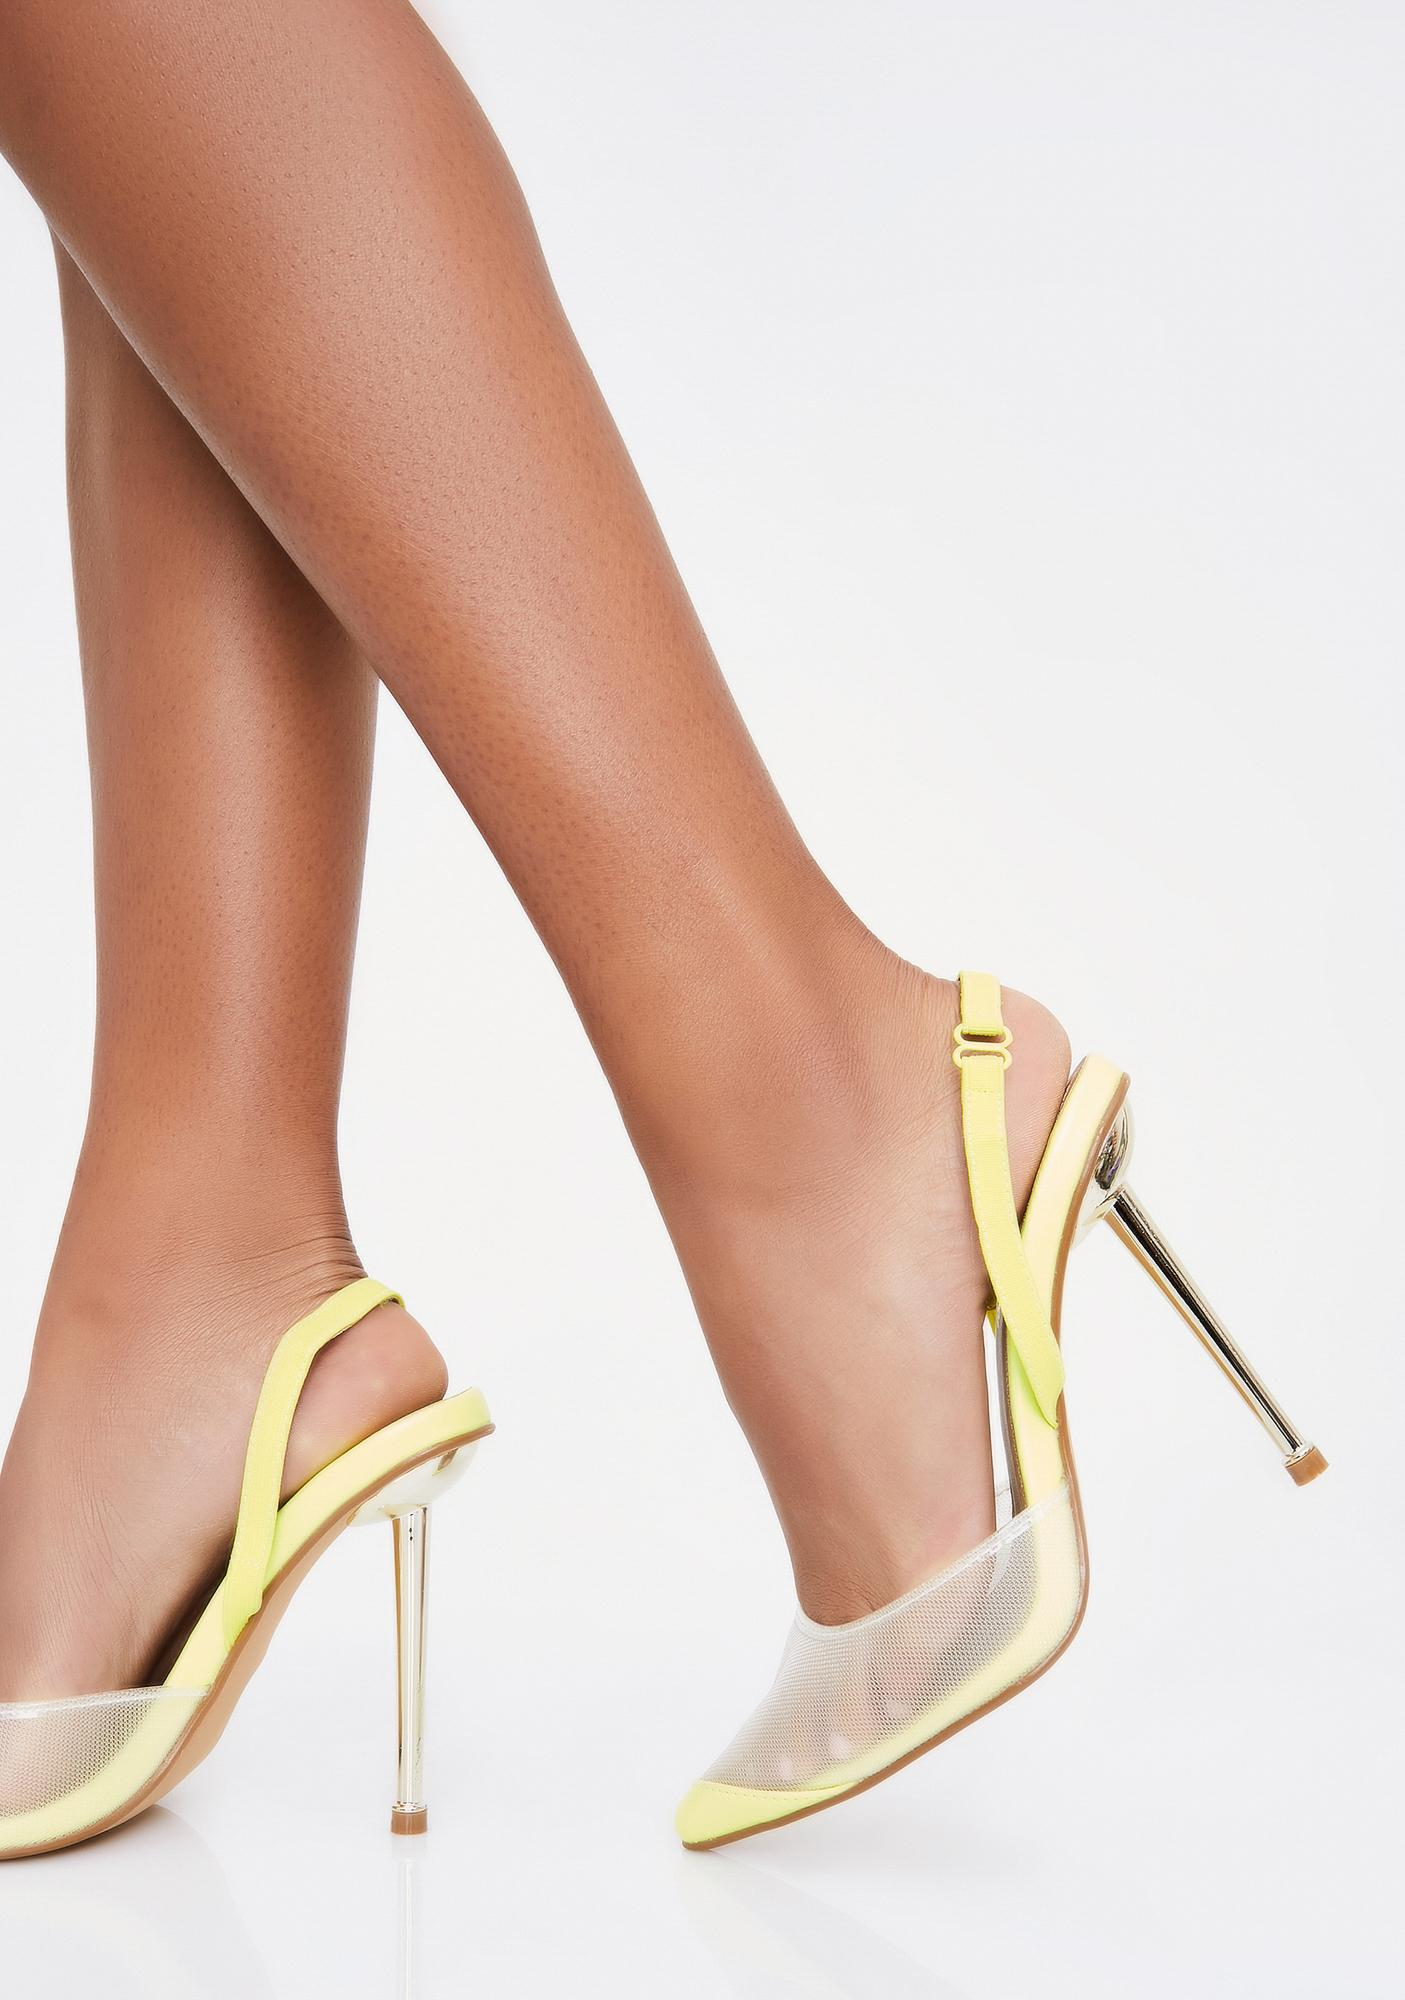 Kryptonite Call My Bestie Clear Heels